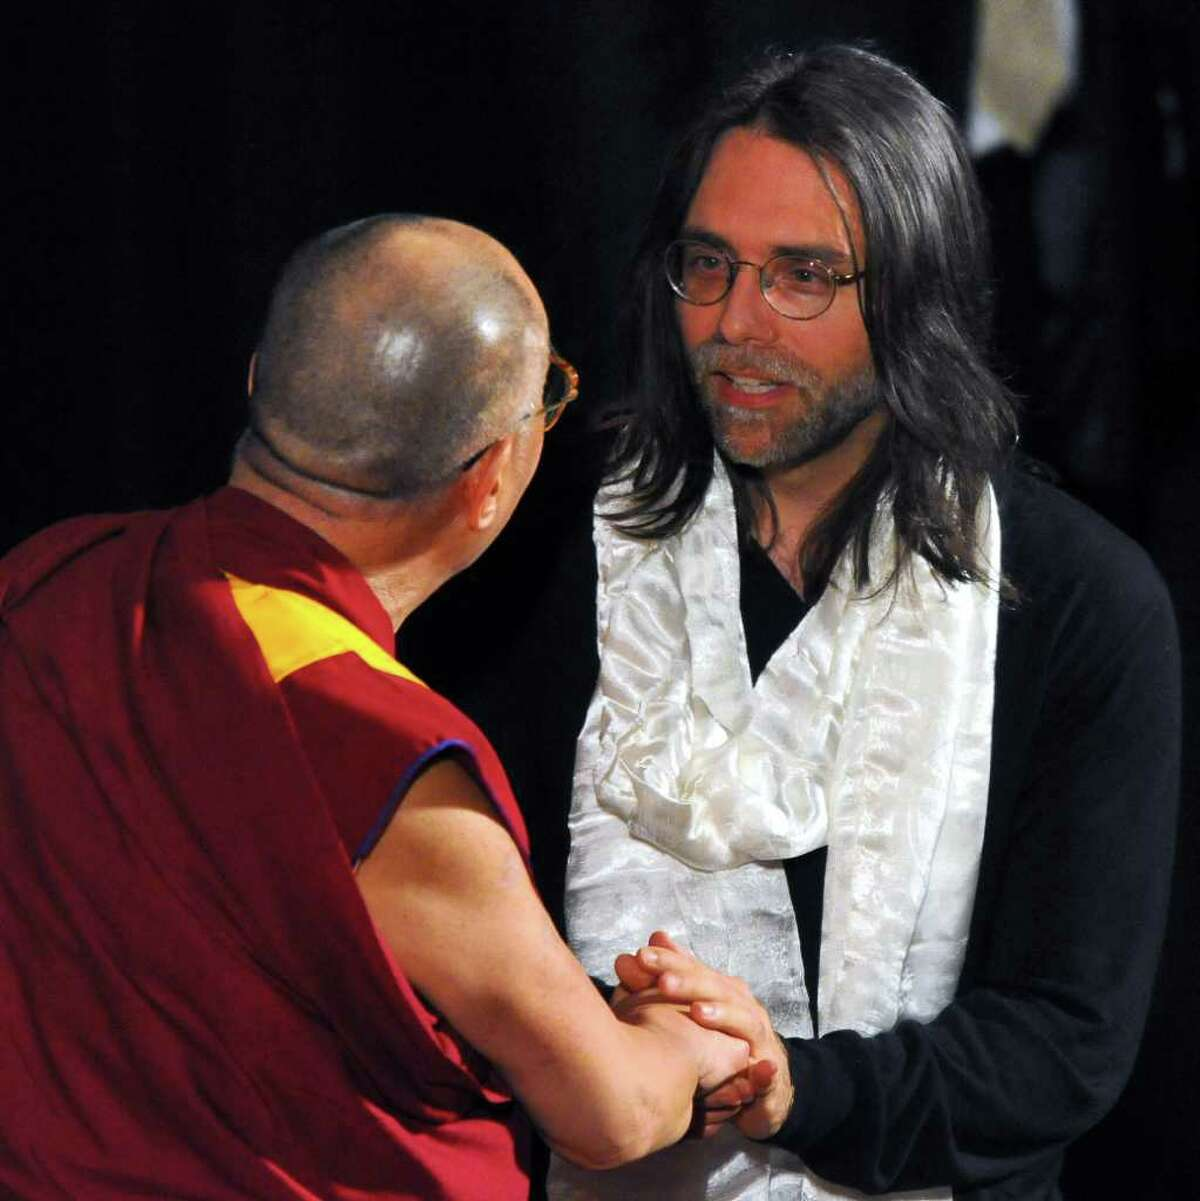 The Dalai Lama speaks onstage with Keith Raniere, right, co-founder of Executive Success Programs, Inc. (ESP), after giving him a Tibetan scarf following his talk at the Palace Theatre, in Albany, N.Y., Wed., May 6, 2009. (Philip Kamrass / Times Union)